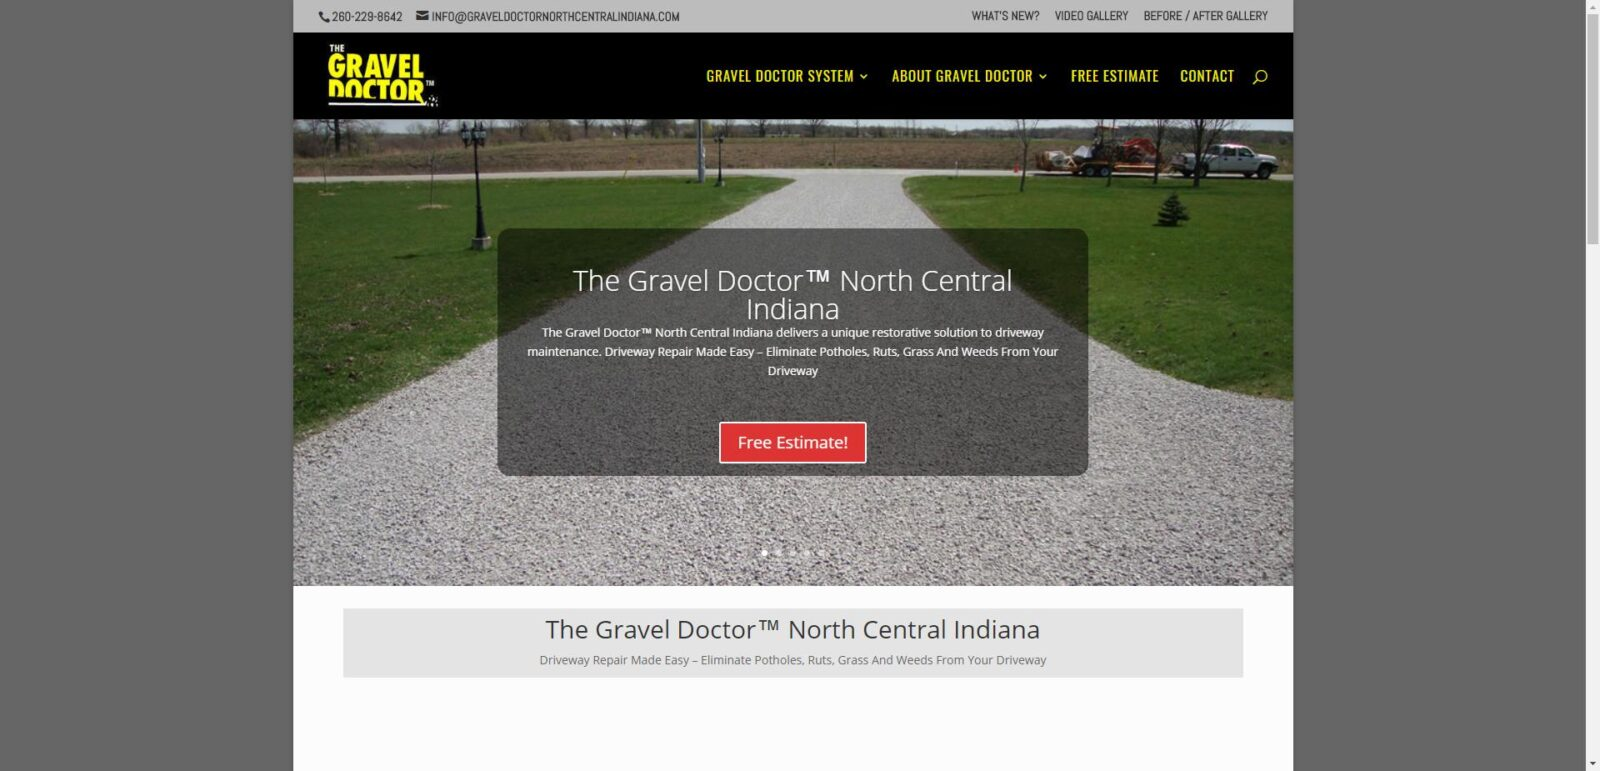 The Gravel Doctor® North Central Indiana